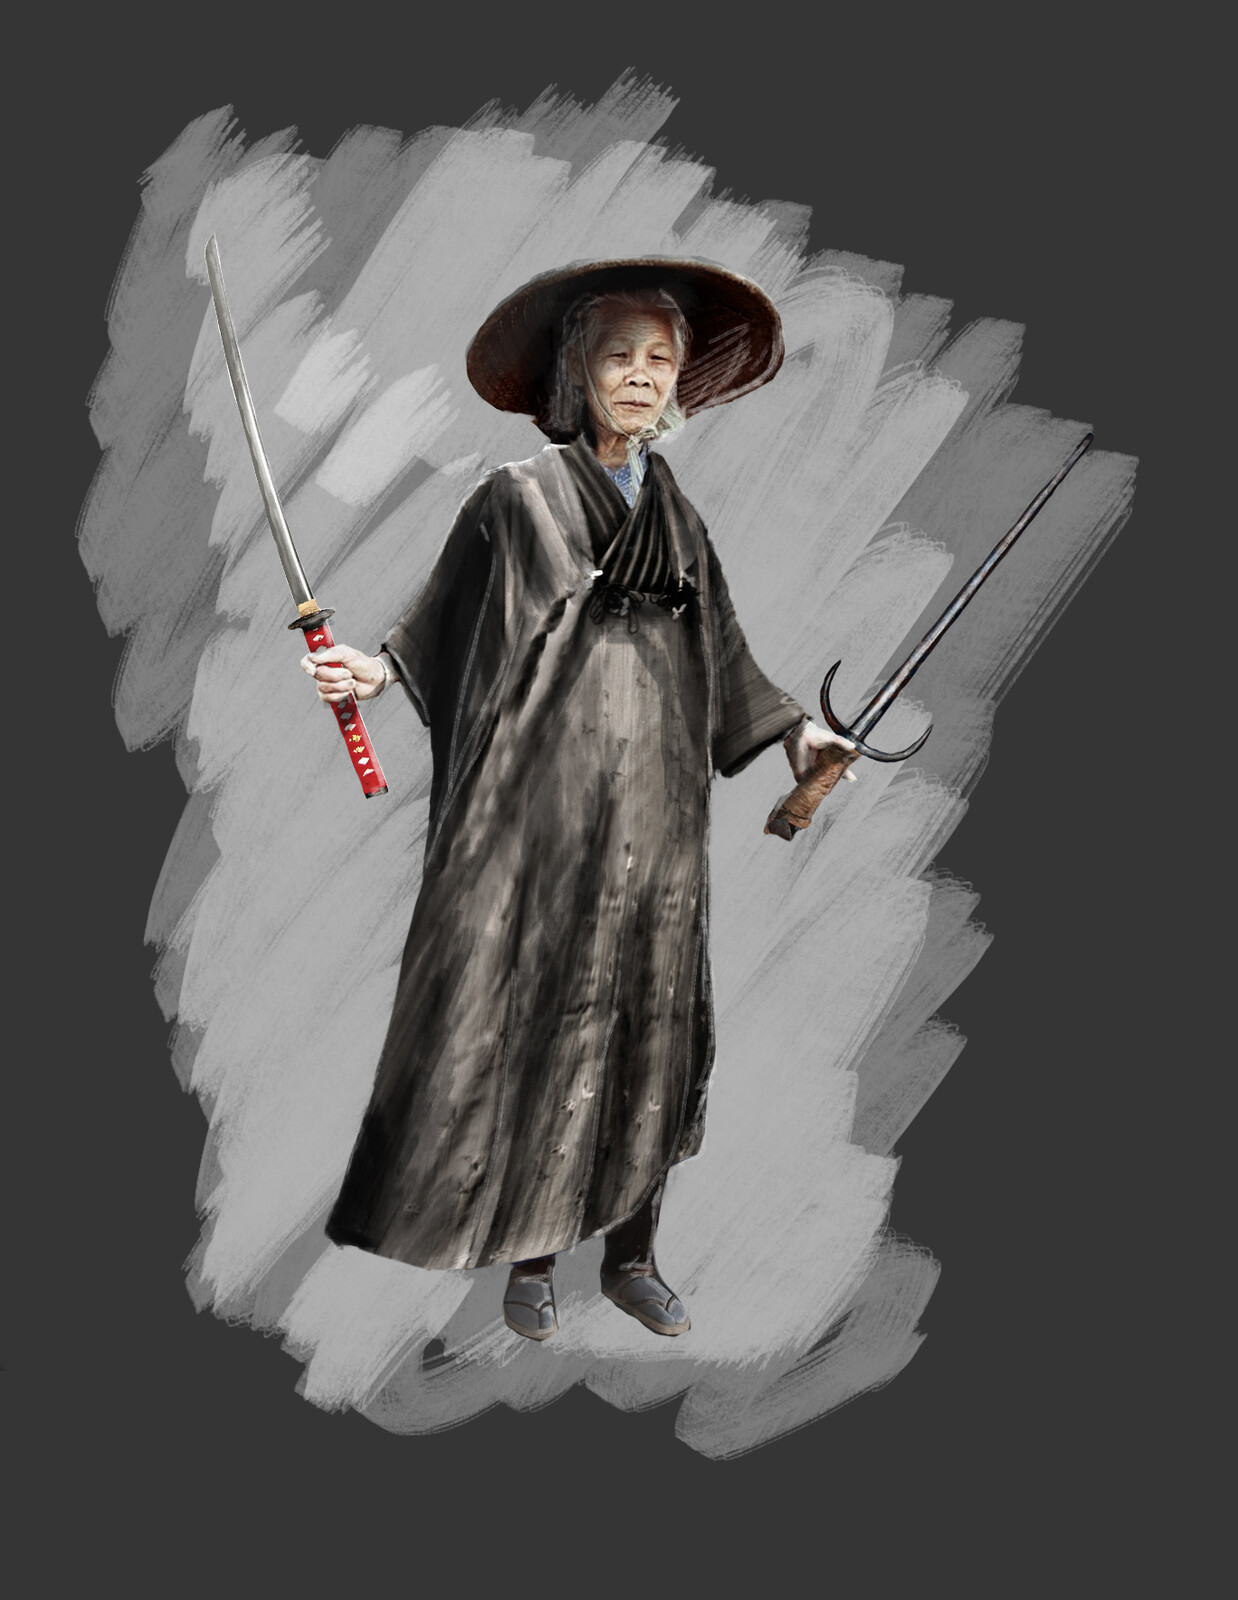 character drawing task, elderly warrior woman.